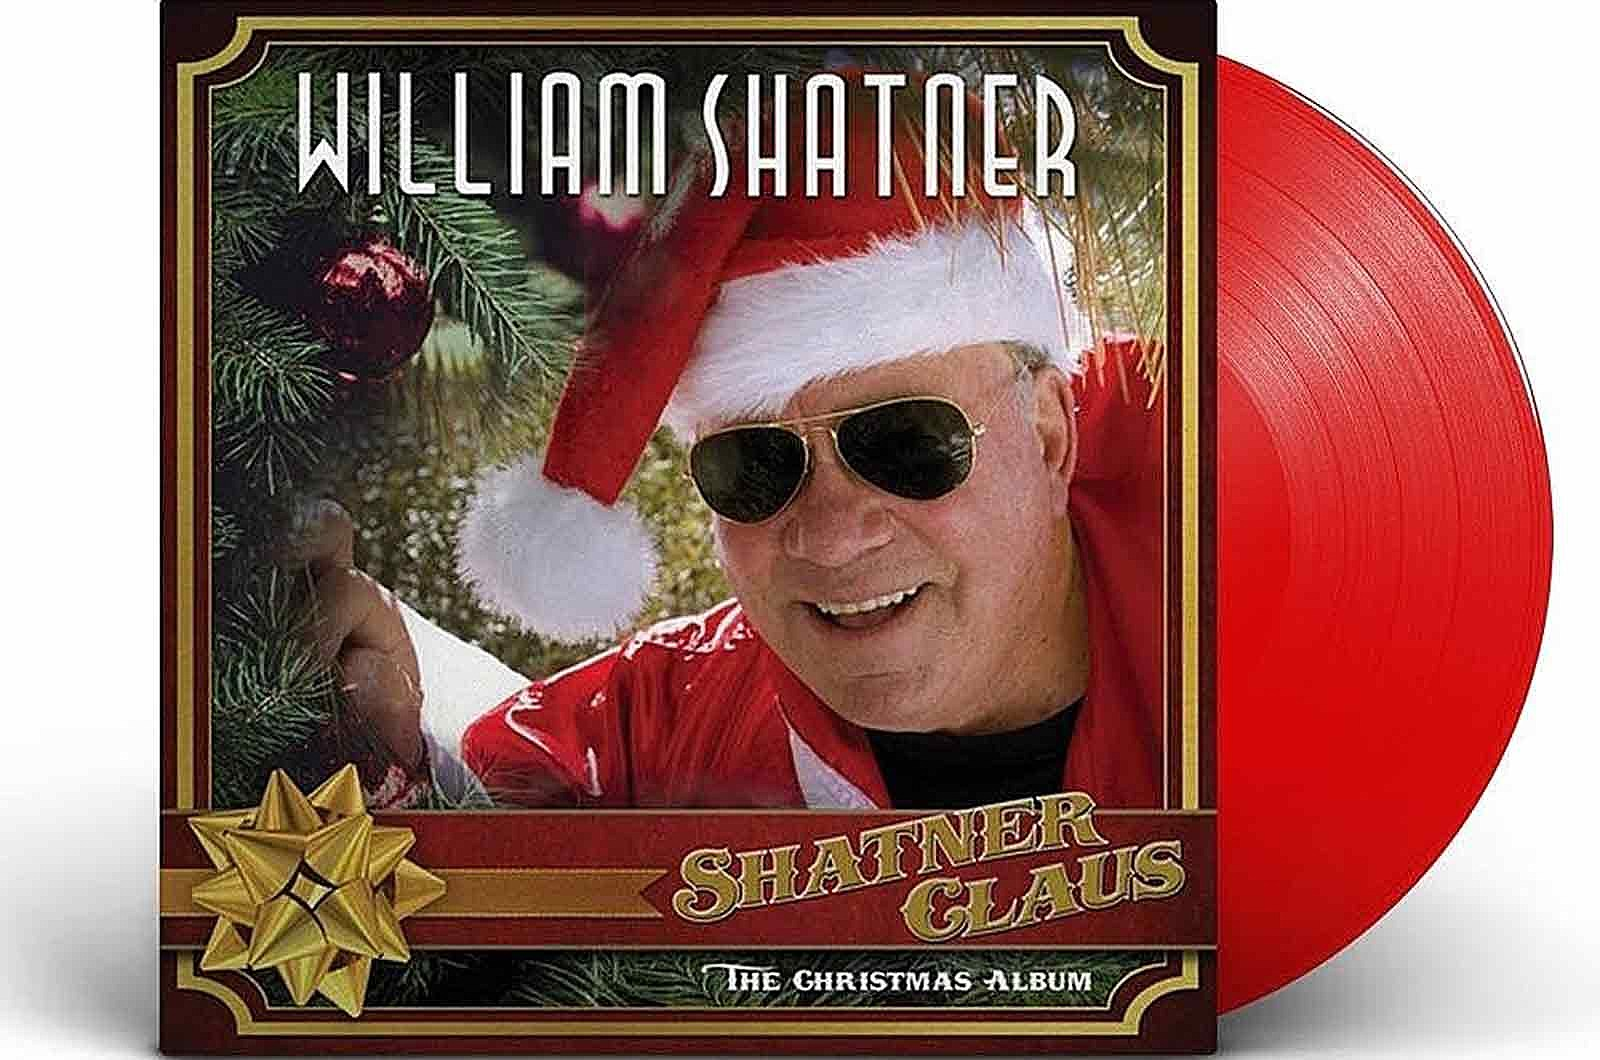 Cars, ZZ Top, Jethro Tull Join William Shatner\'s Christmas Album